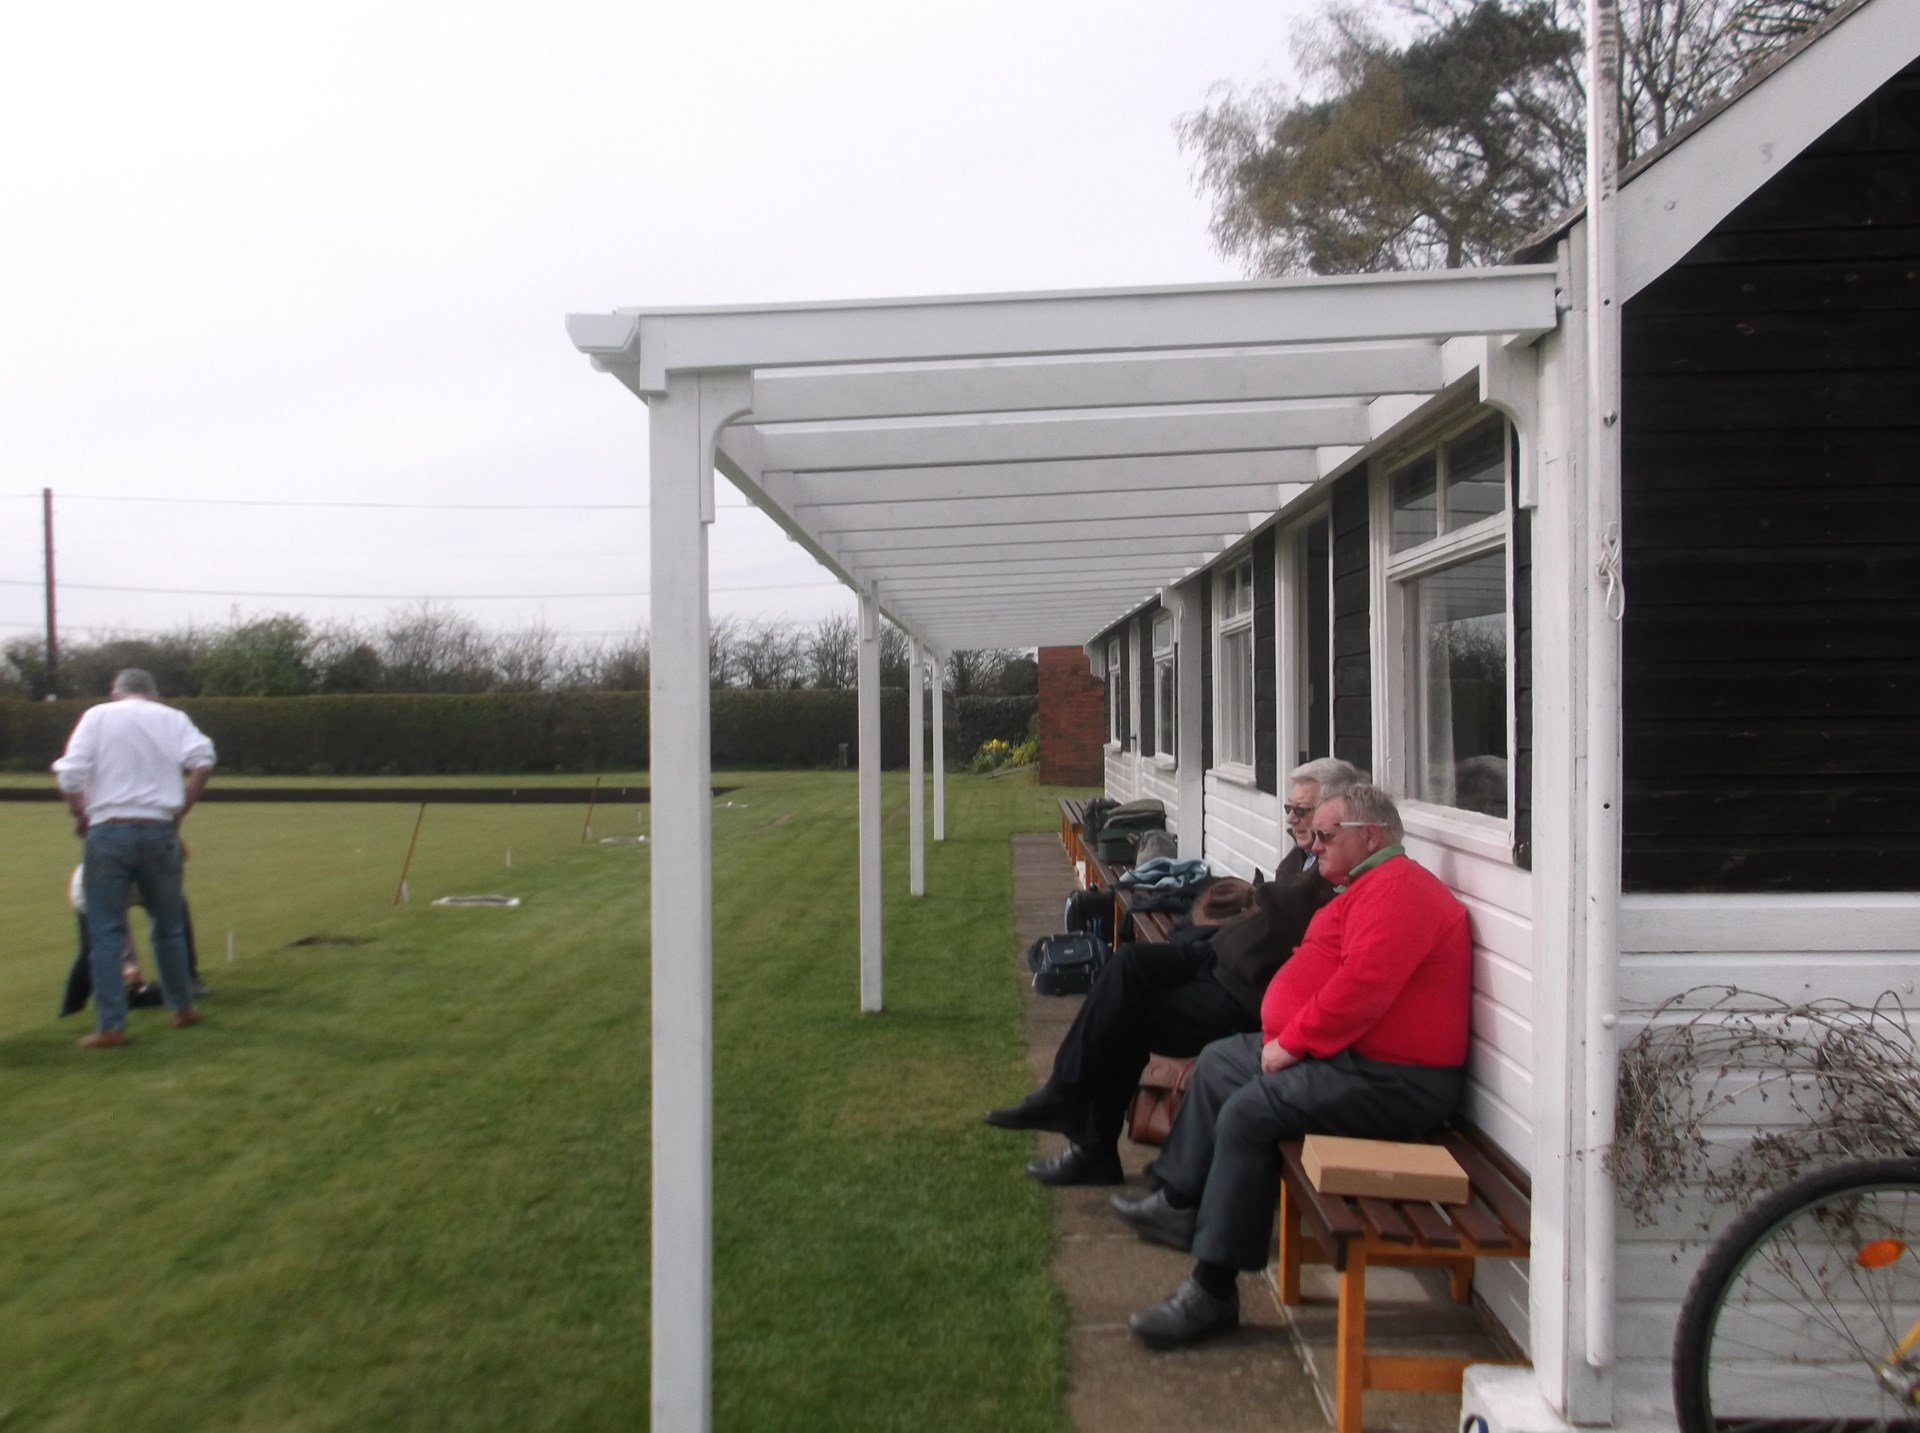 Members enjoying awning